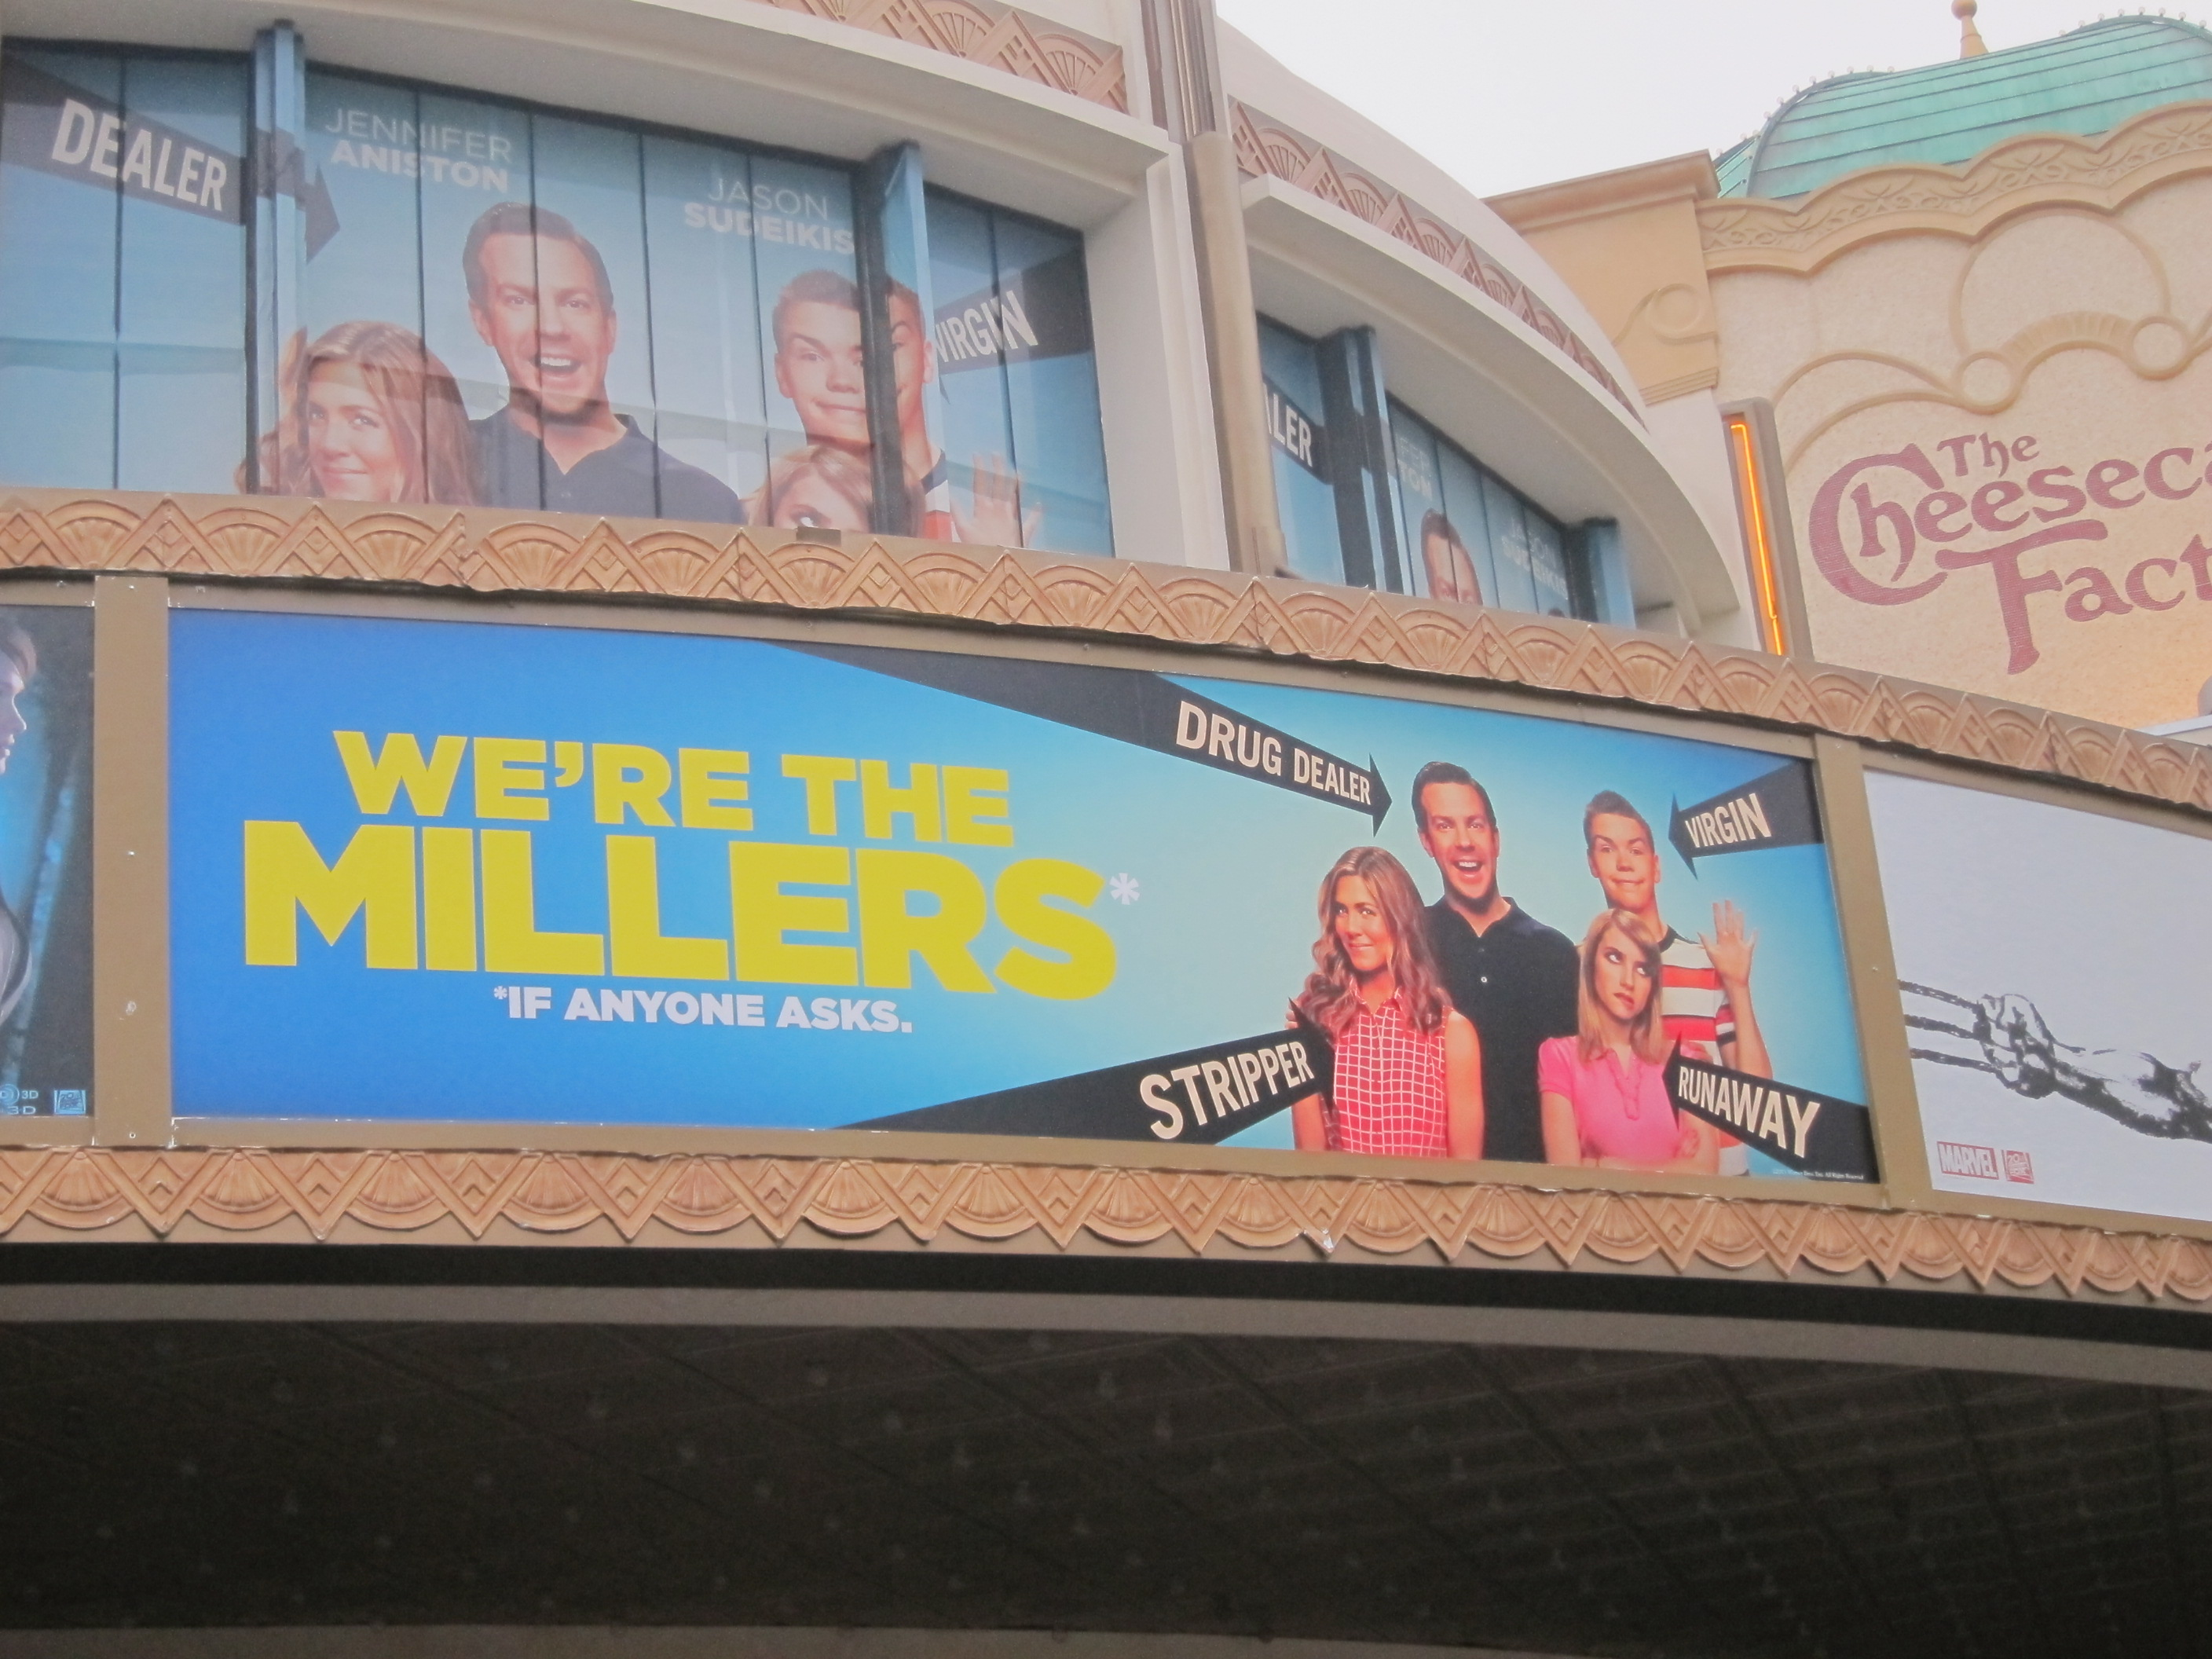 Custom marquee for WE'RE THE MILLERS at The Grove Theatre in Southern California.  Note the special window graphics above the custom marquee.